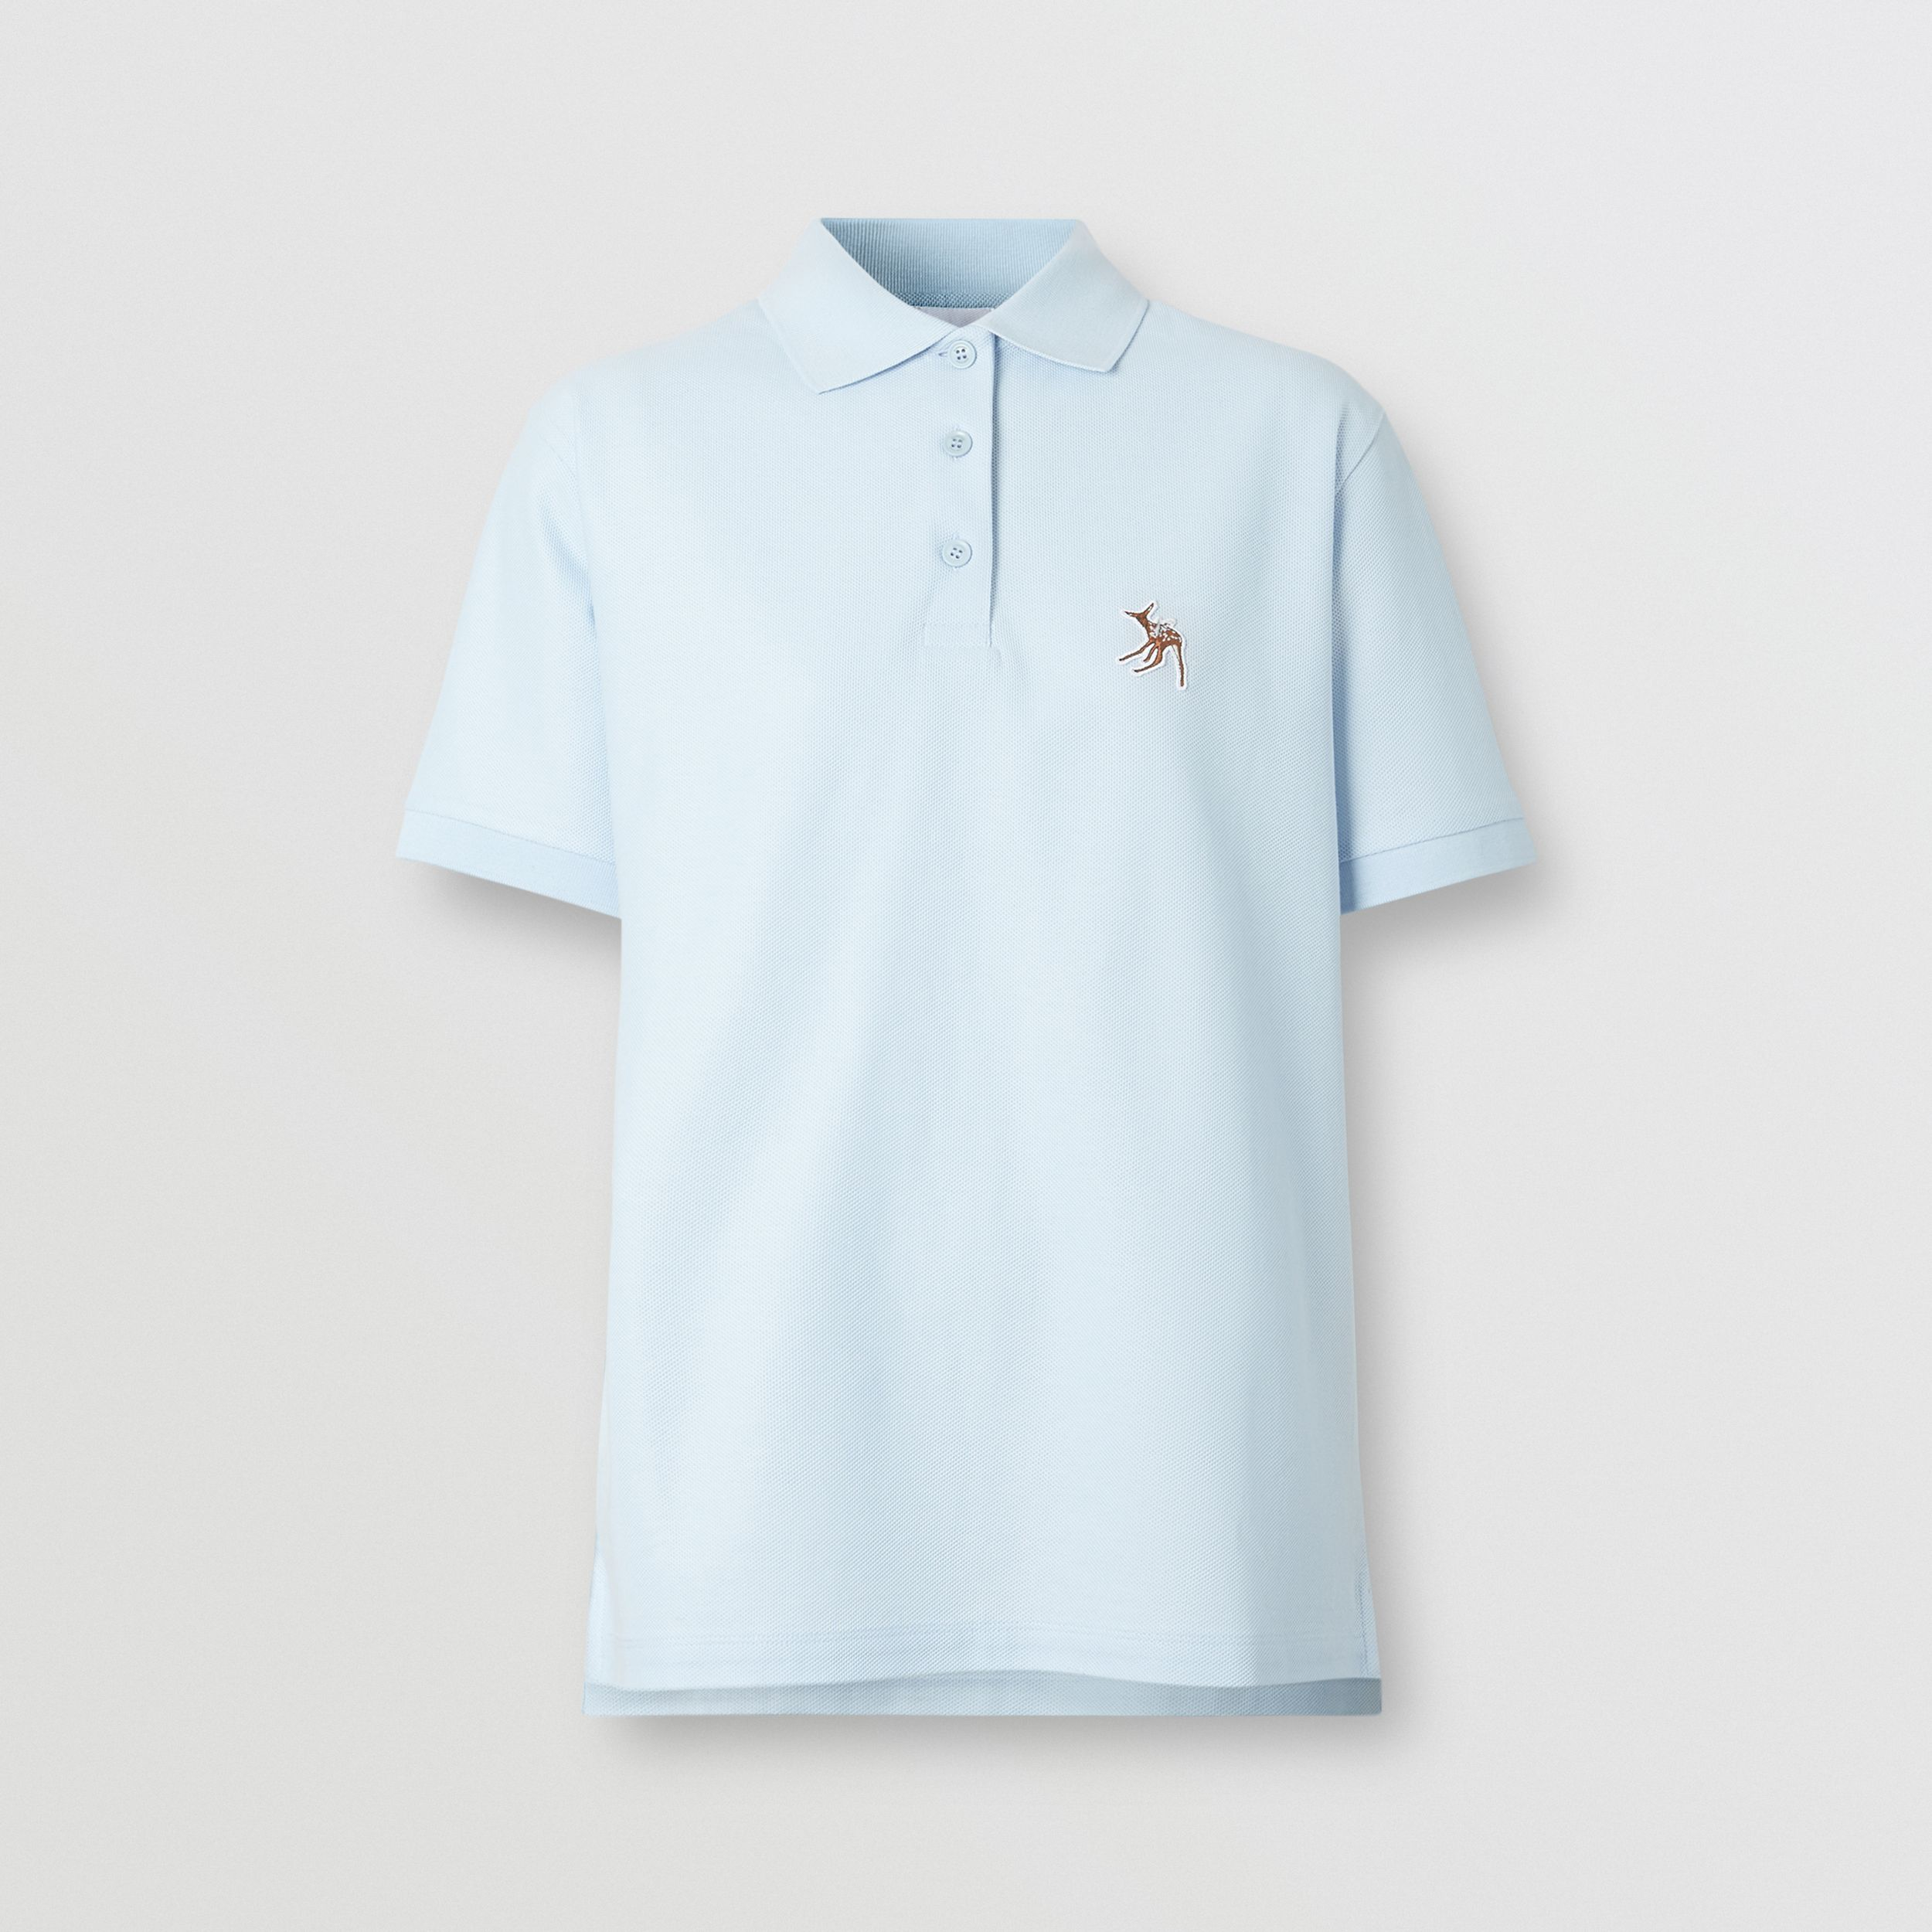 Deer Motif Cotton Piqué Oversized Polo Shirt in Pale Blue - Women | Burberry - 4